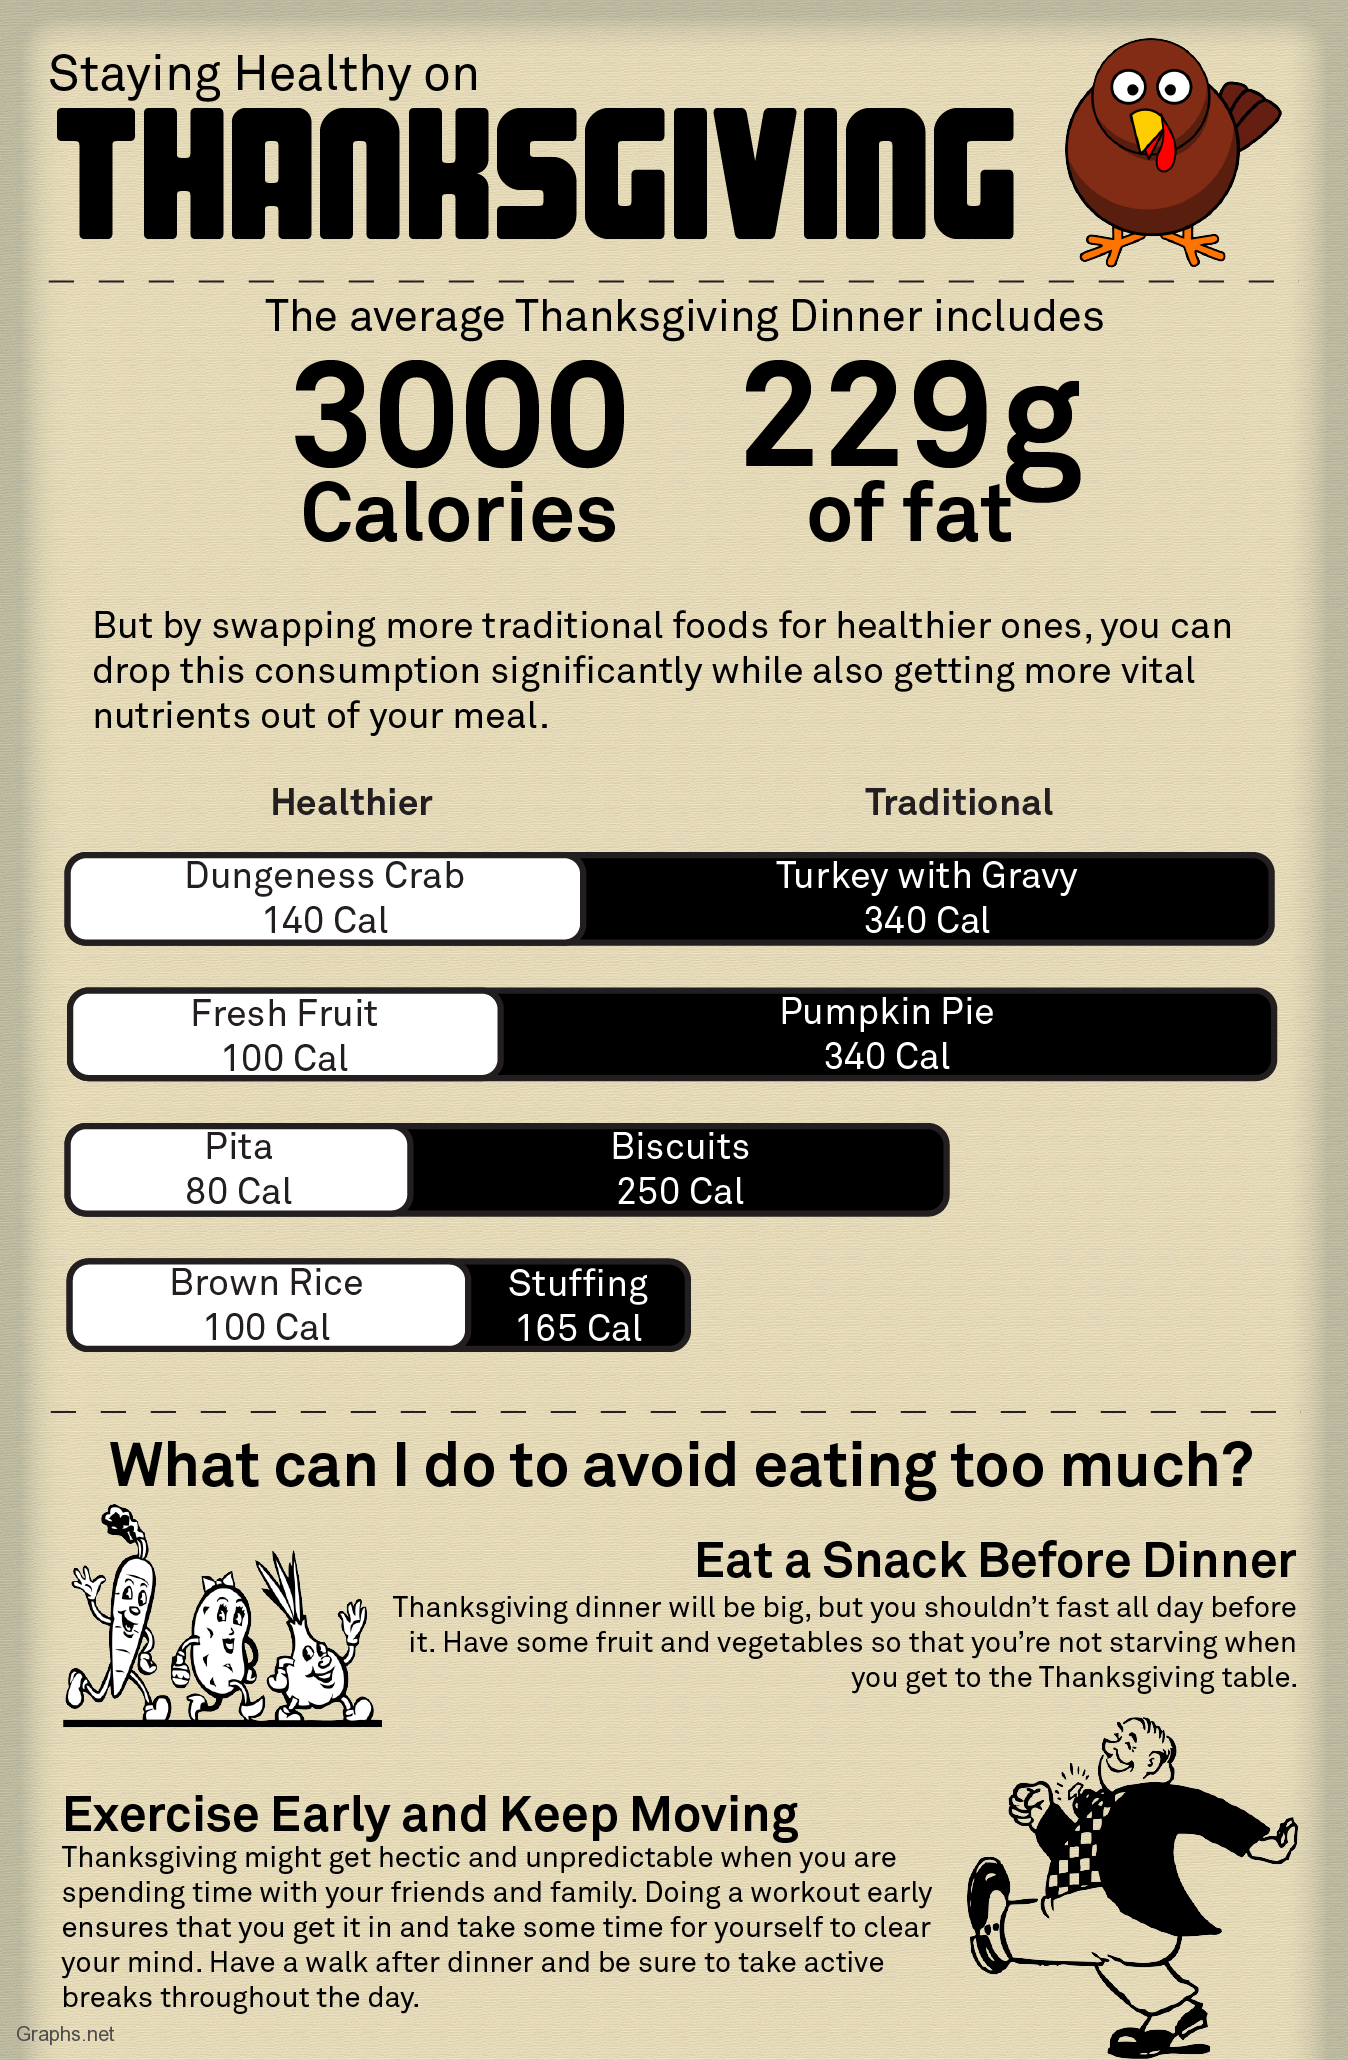 Stay Healthy on Thanksgiving